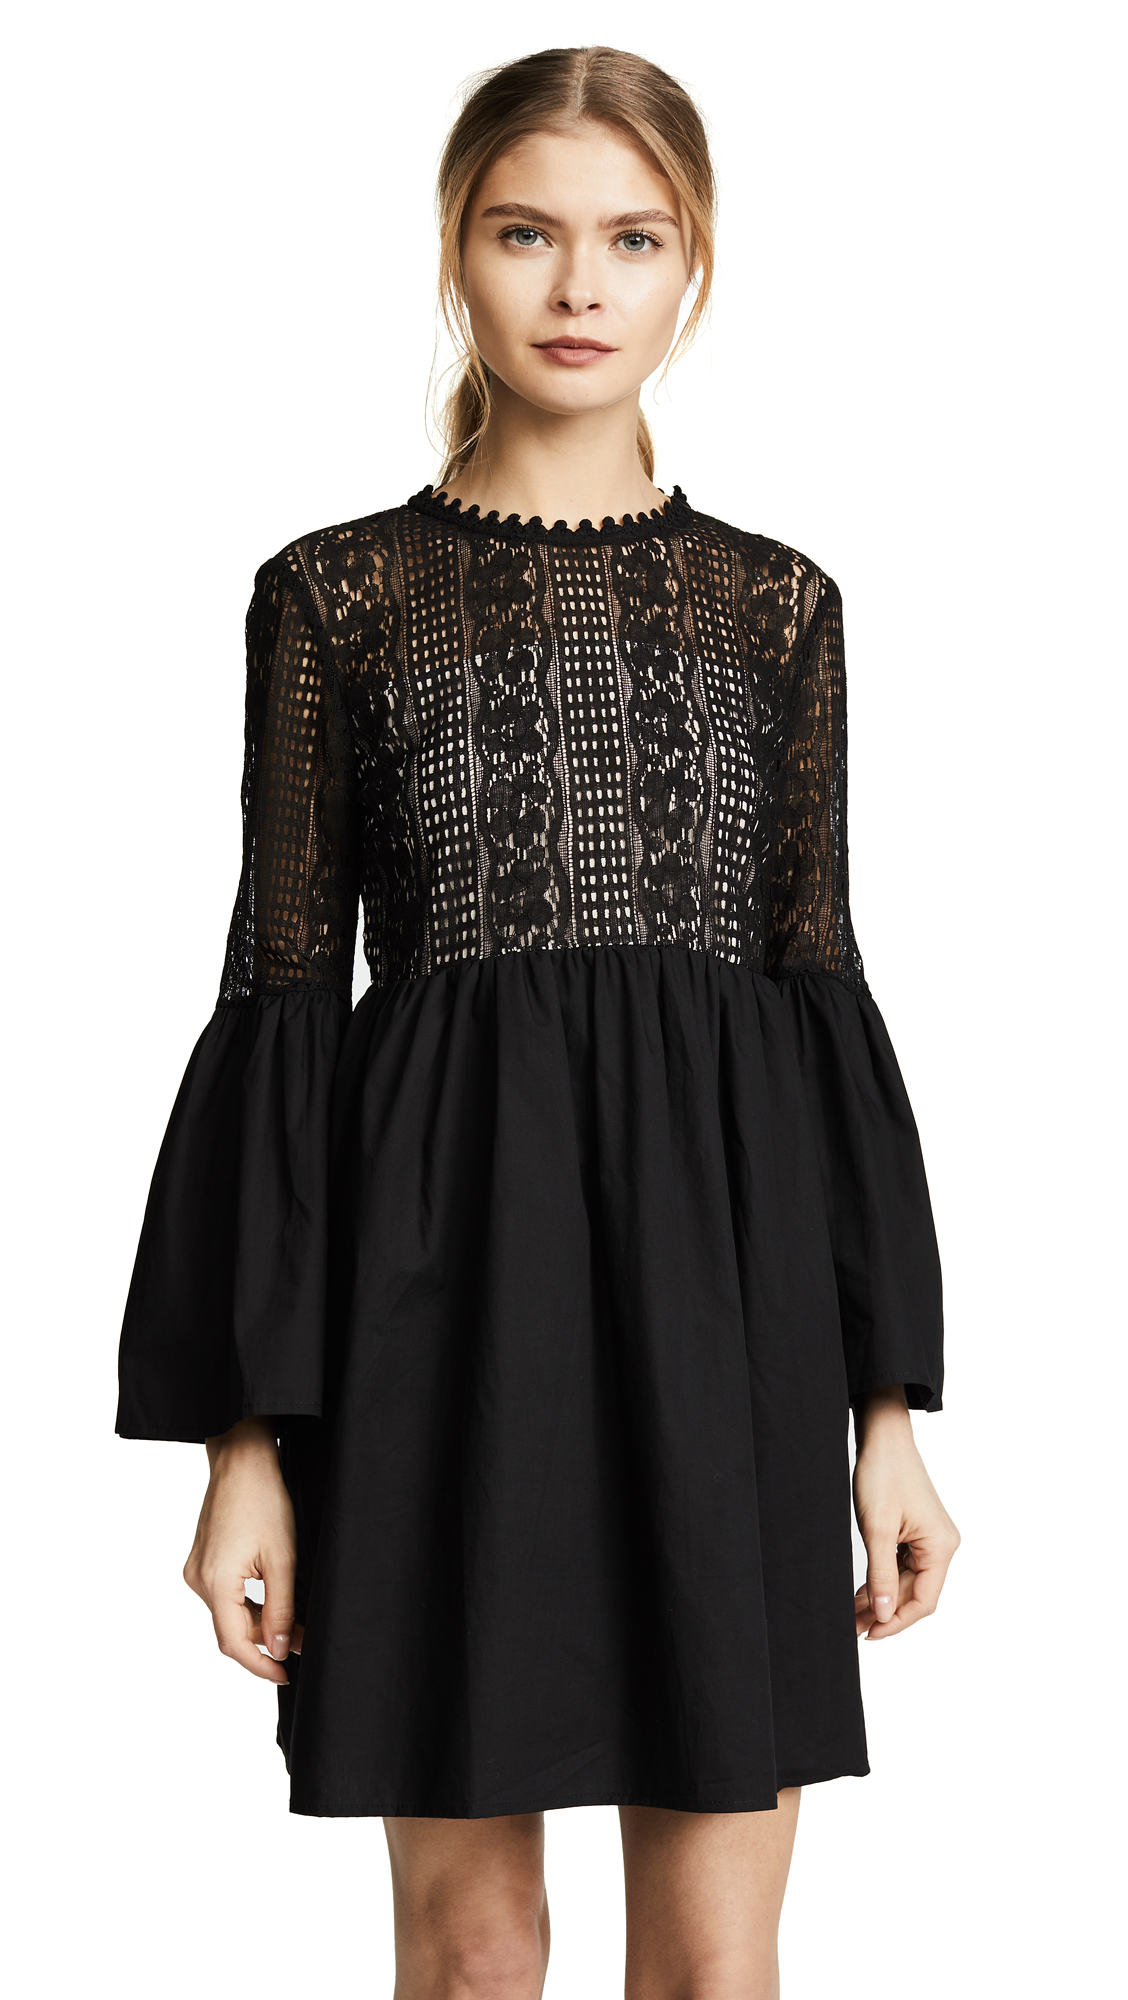 endless rose Lace Mini Dress - Black